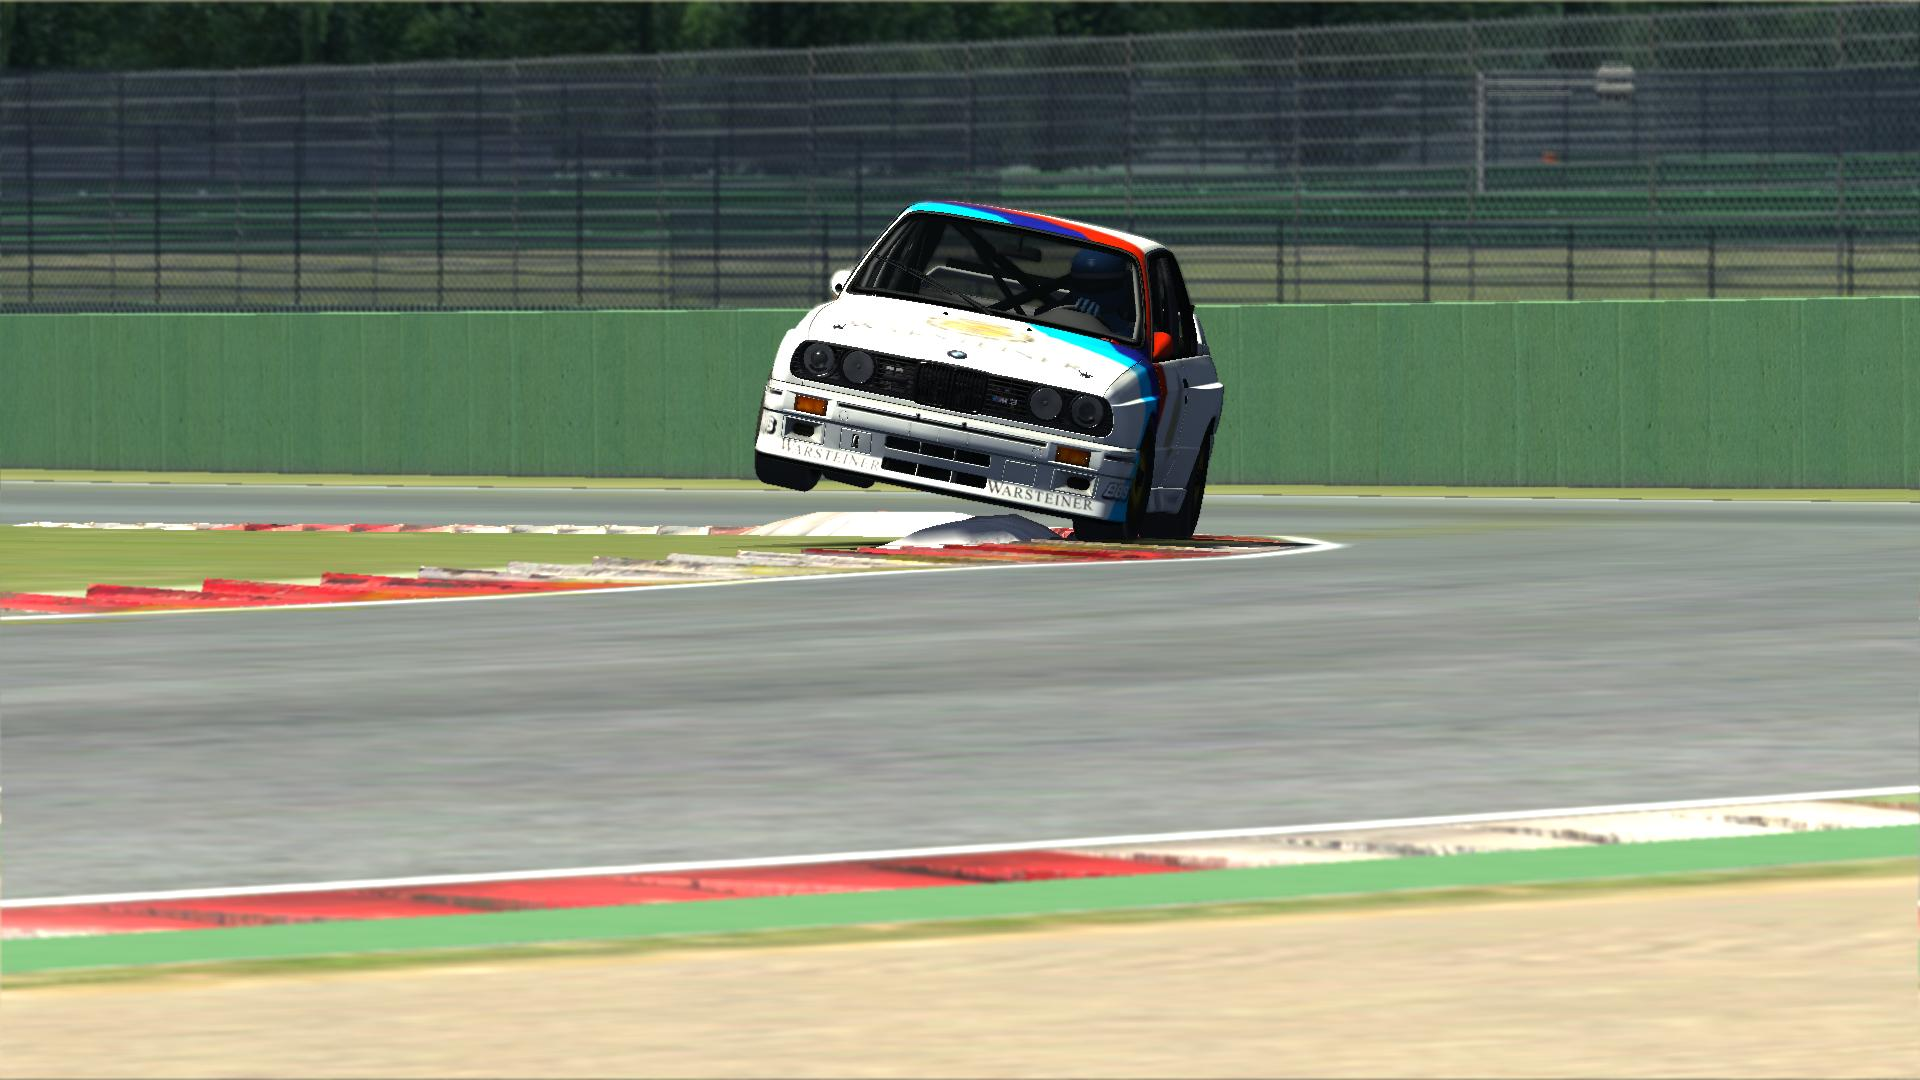 BMW Jump at Vallelunga